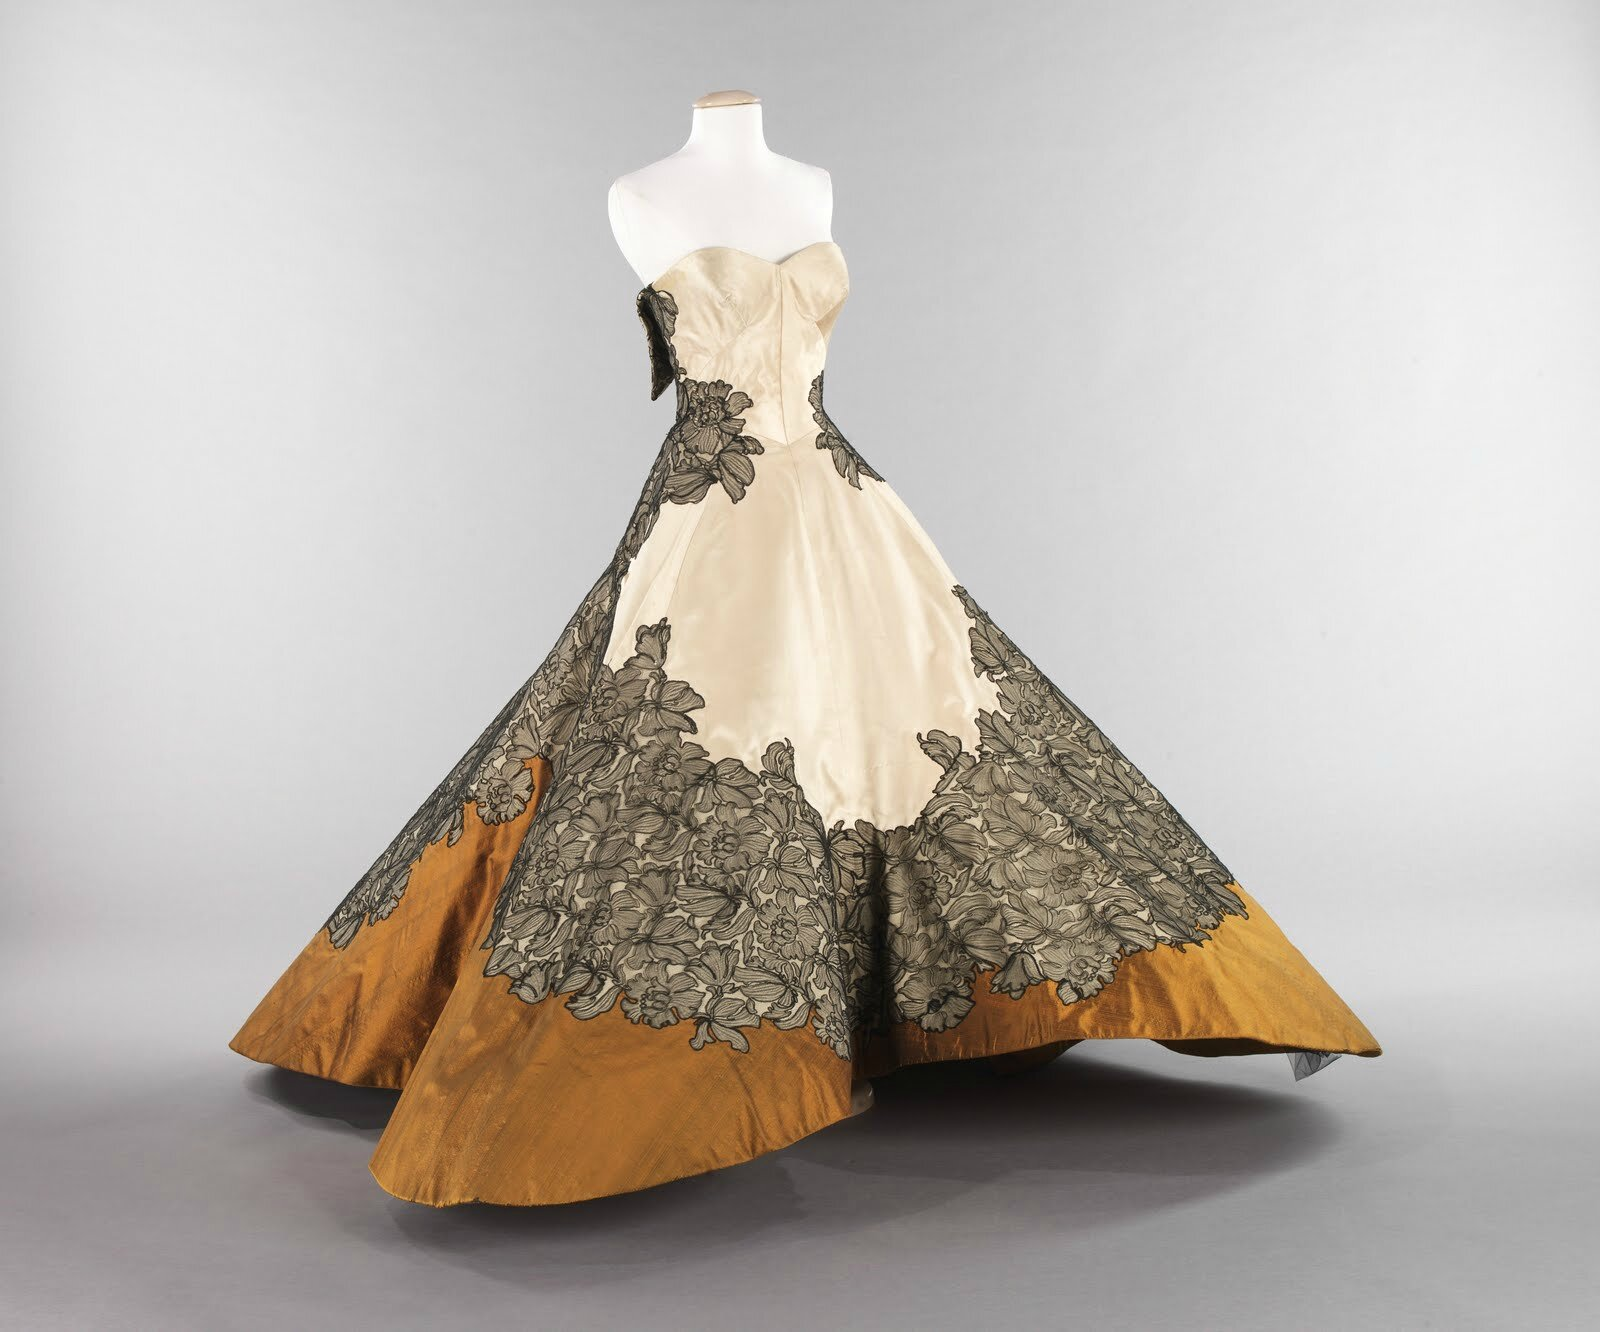 Fashion's evolution showcased in exhibition at the Cincinnati Art Museum